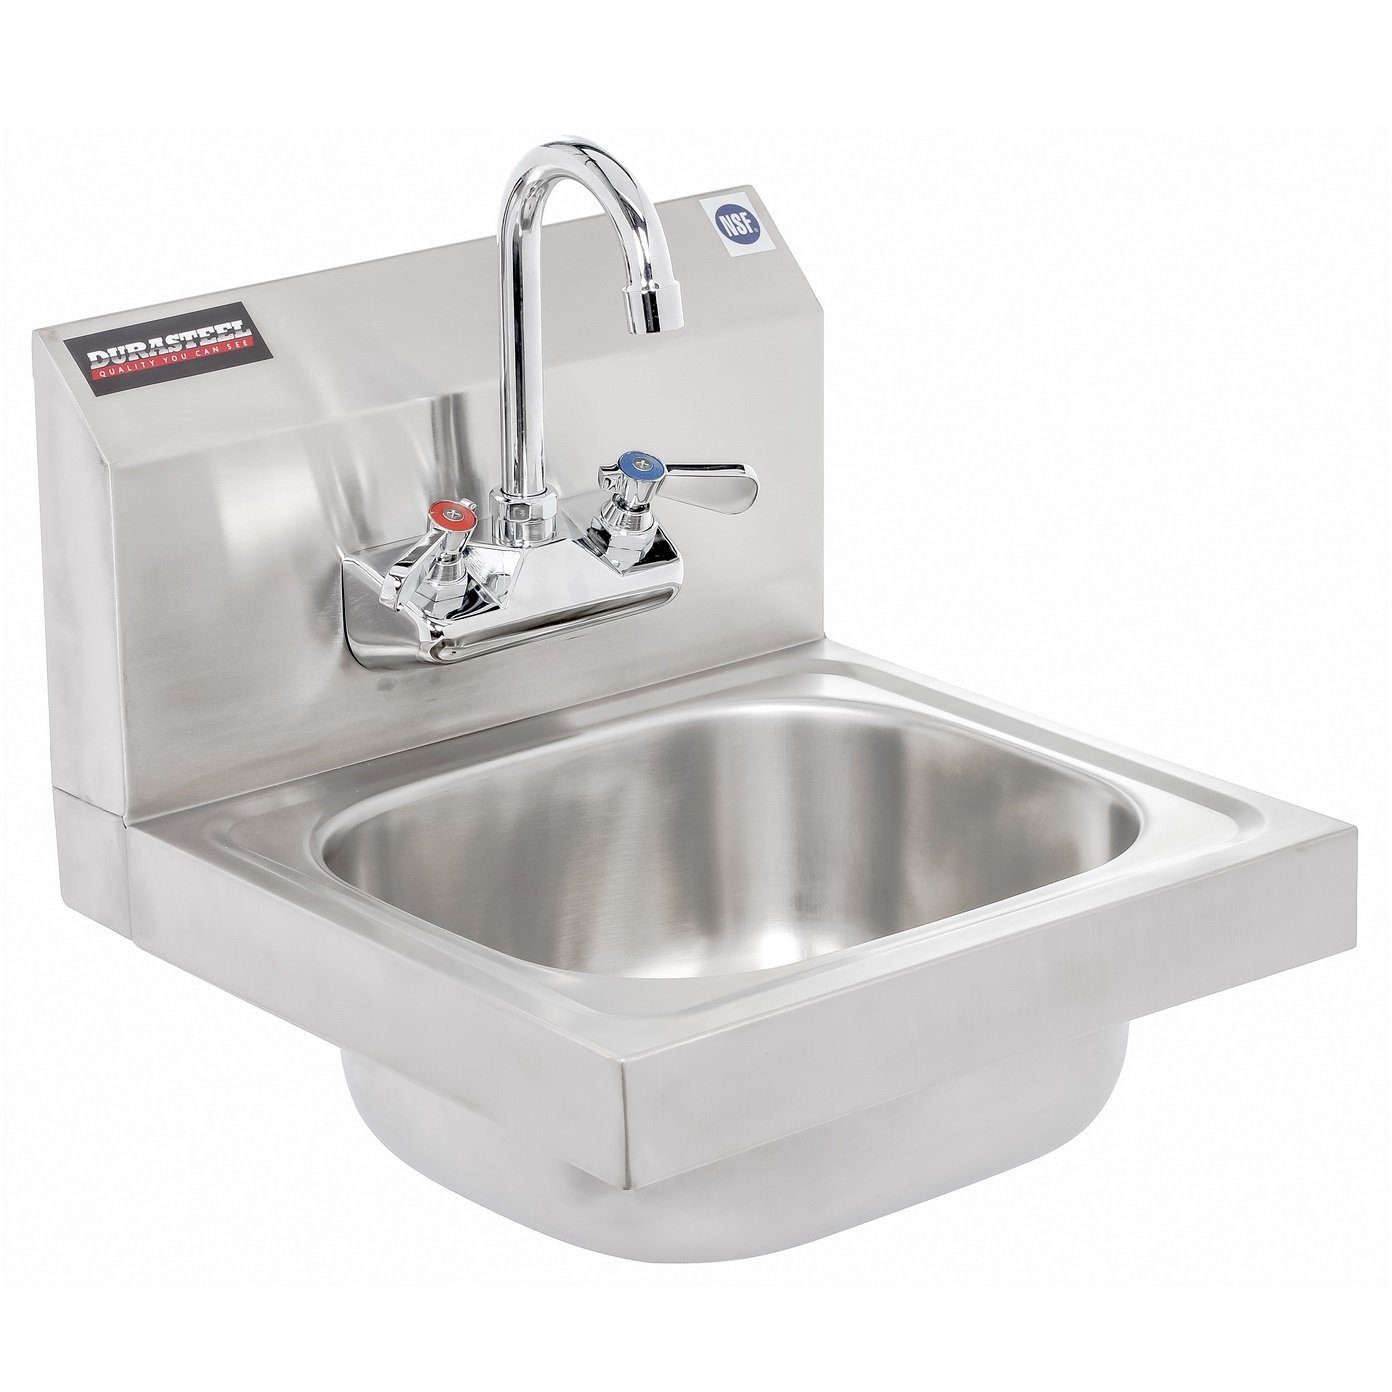 Durasteel Stainless Steel Hand Sink With 10w X 12l X 6d Bowl